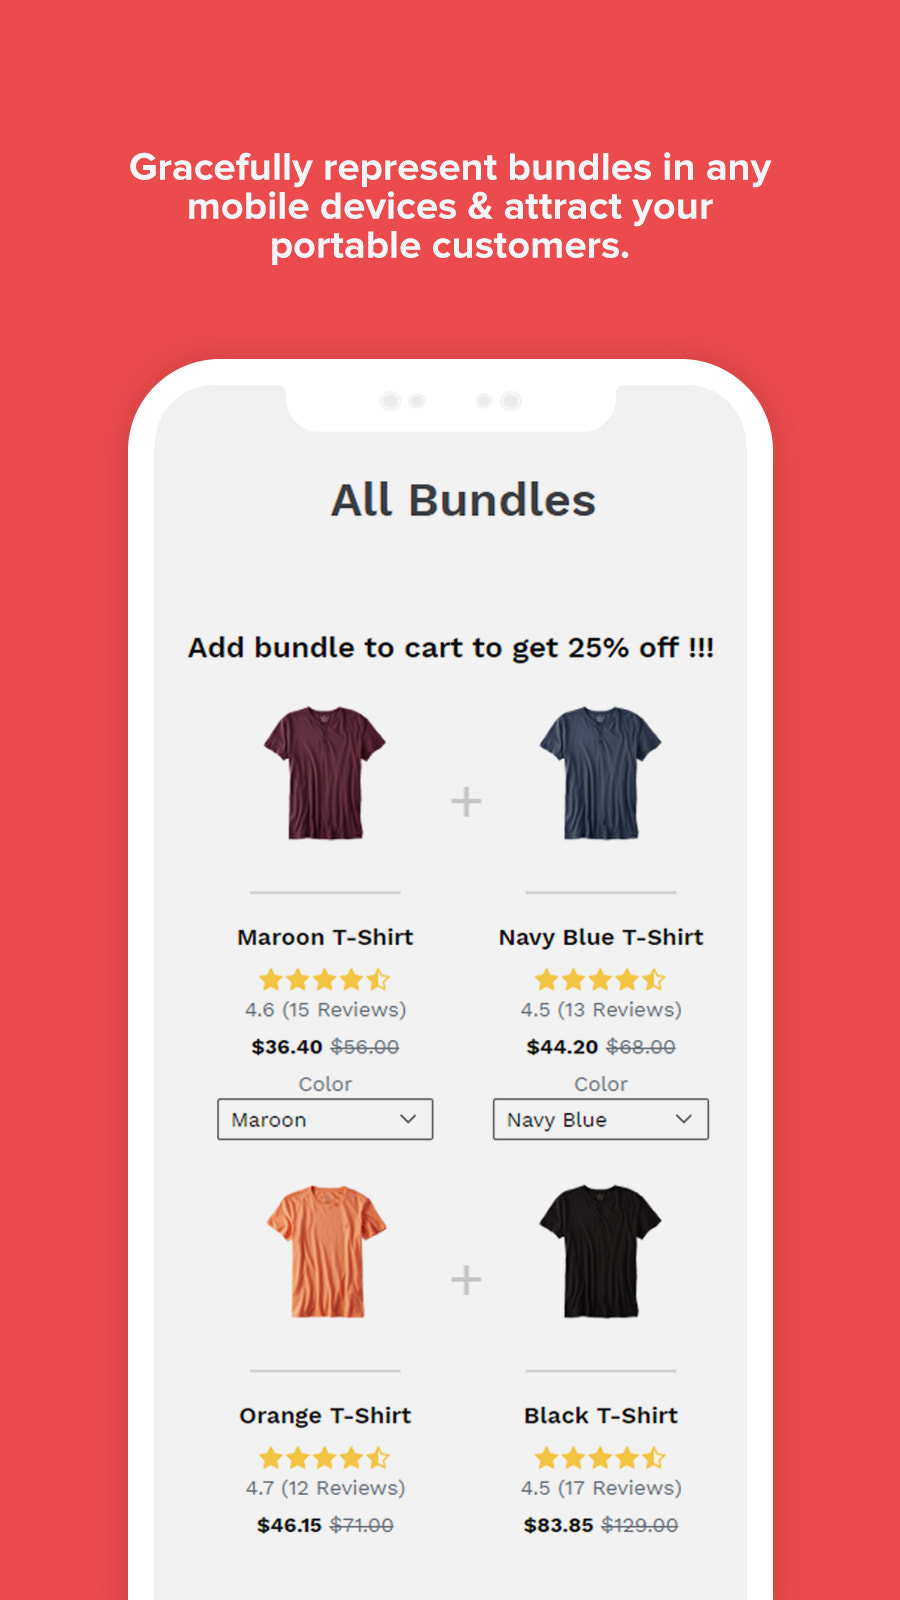 Mobile View of Product Bundle